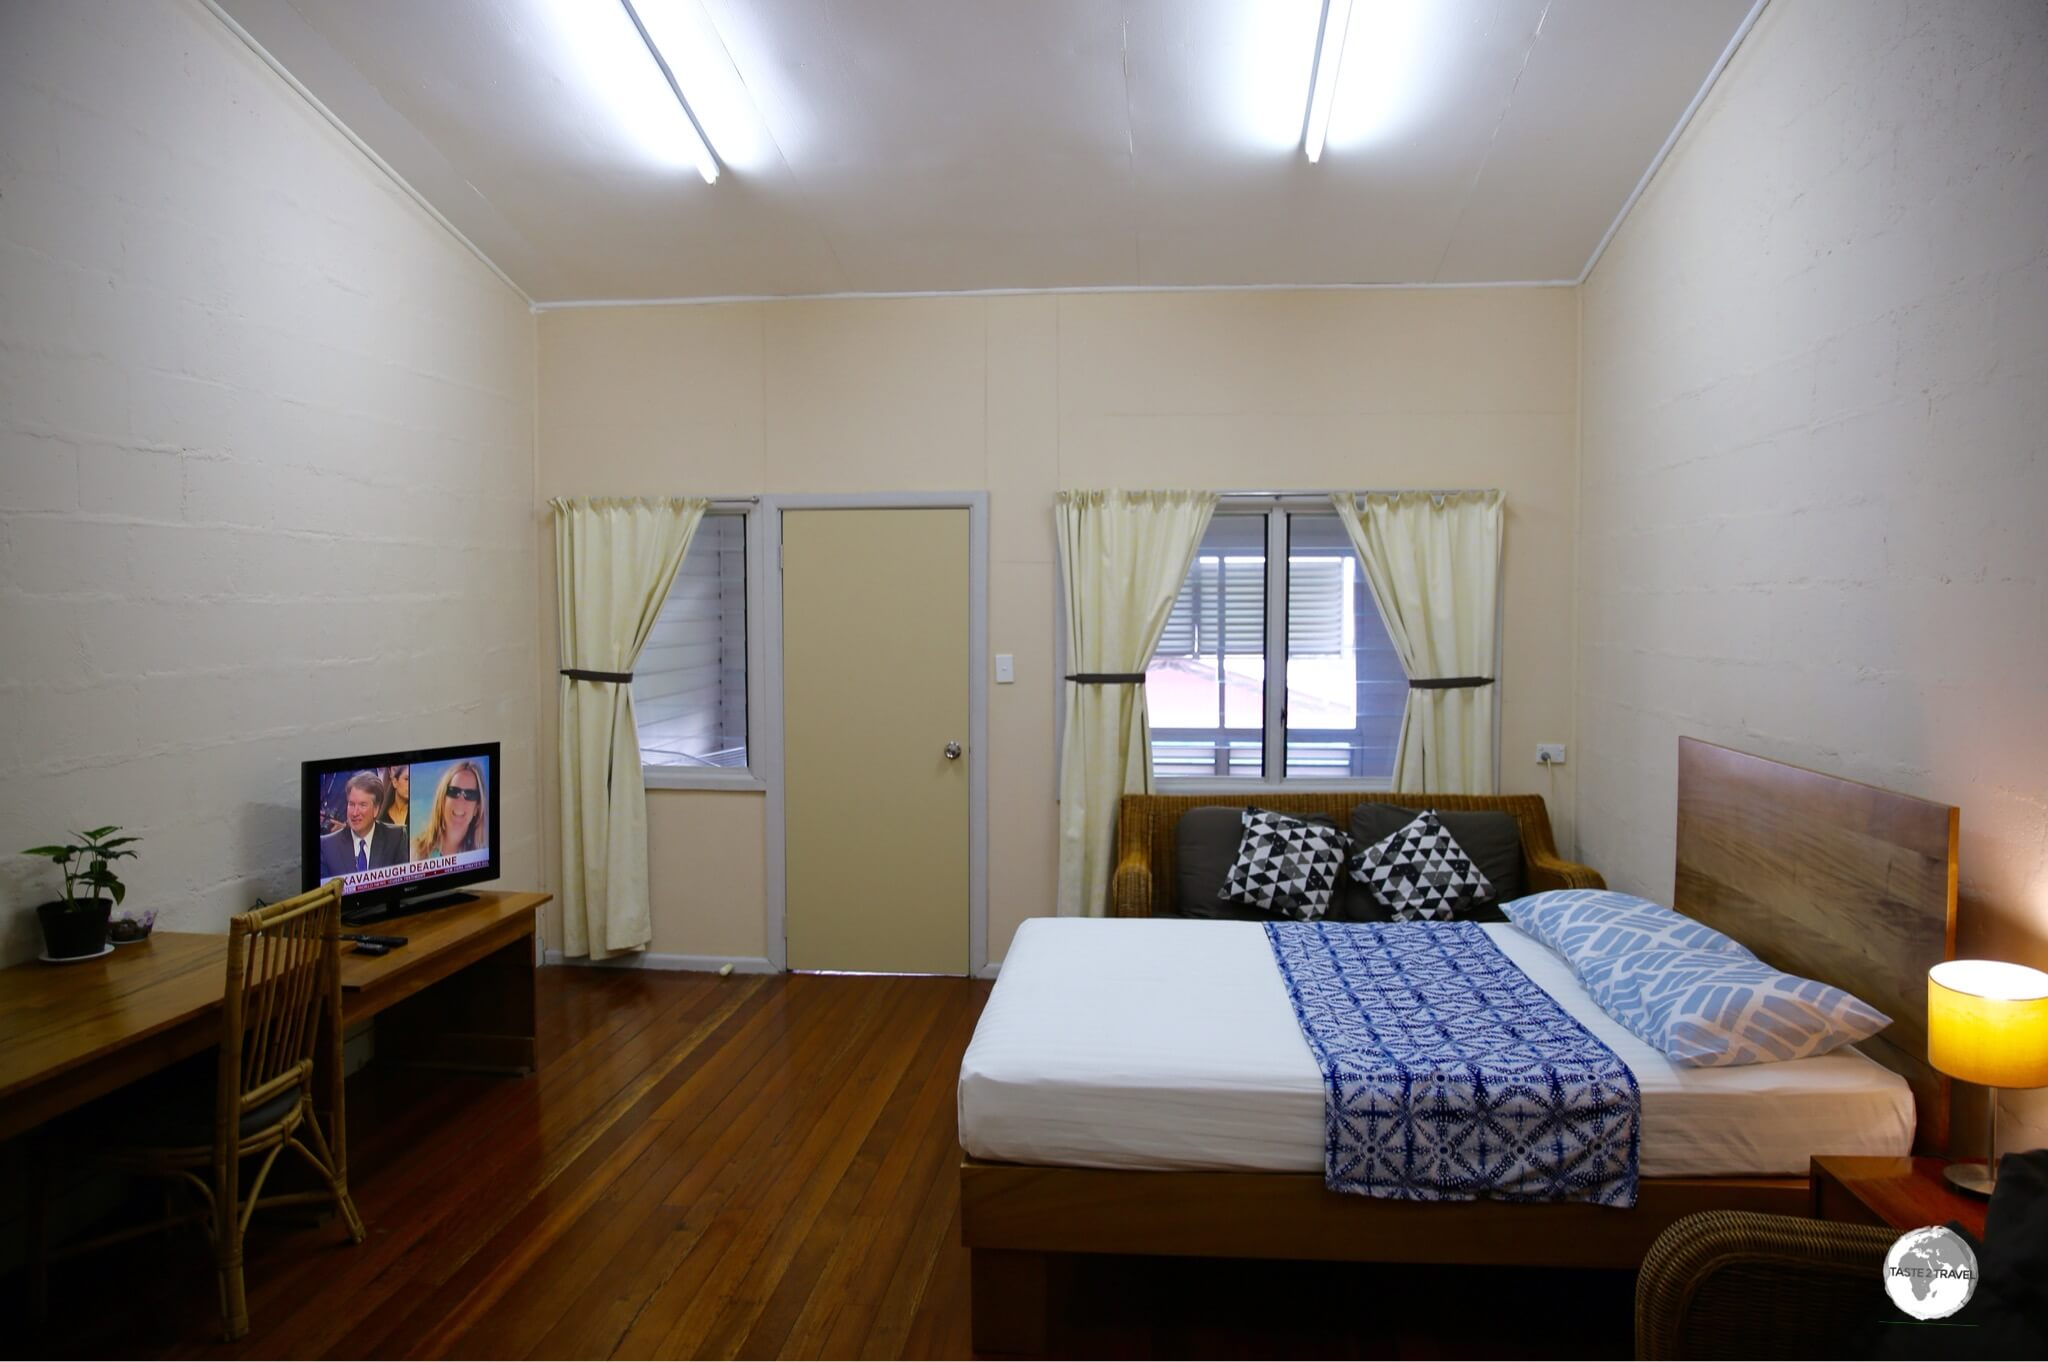 Apartments at 'Access Units on Ramsi street' are very spacious and comfortable.